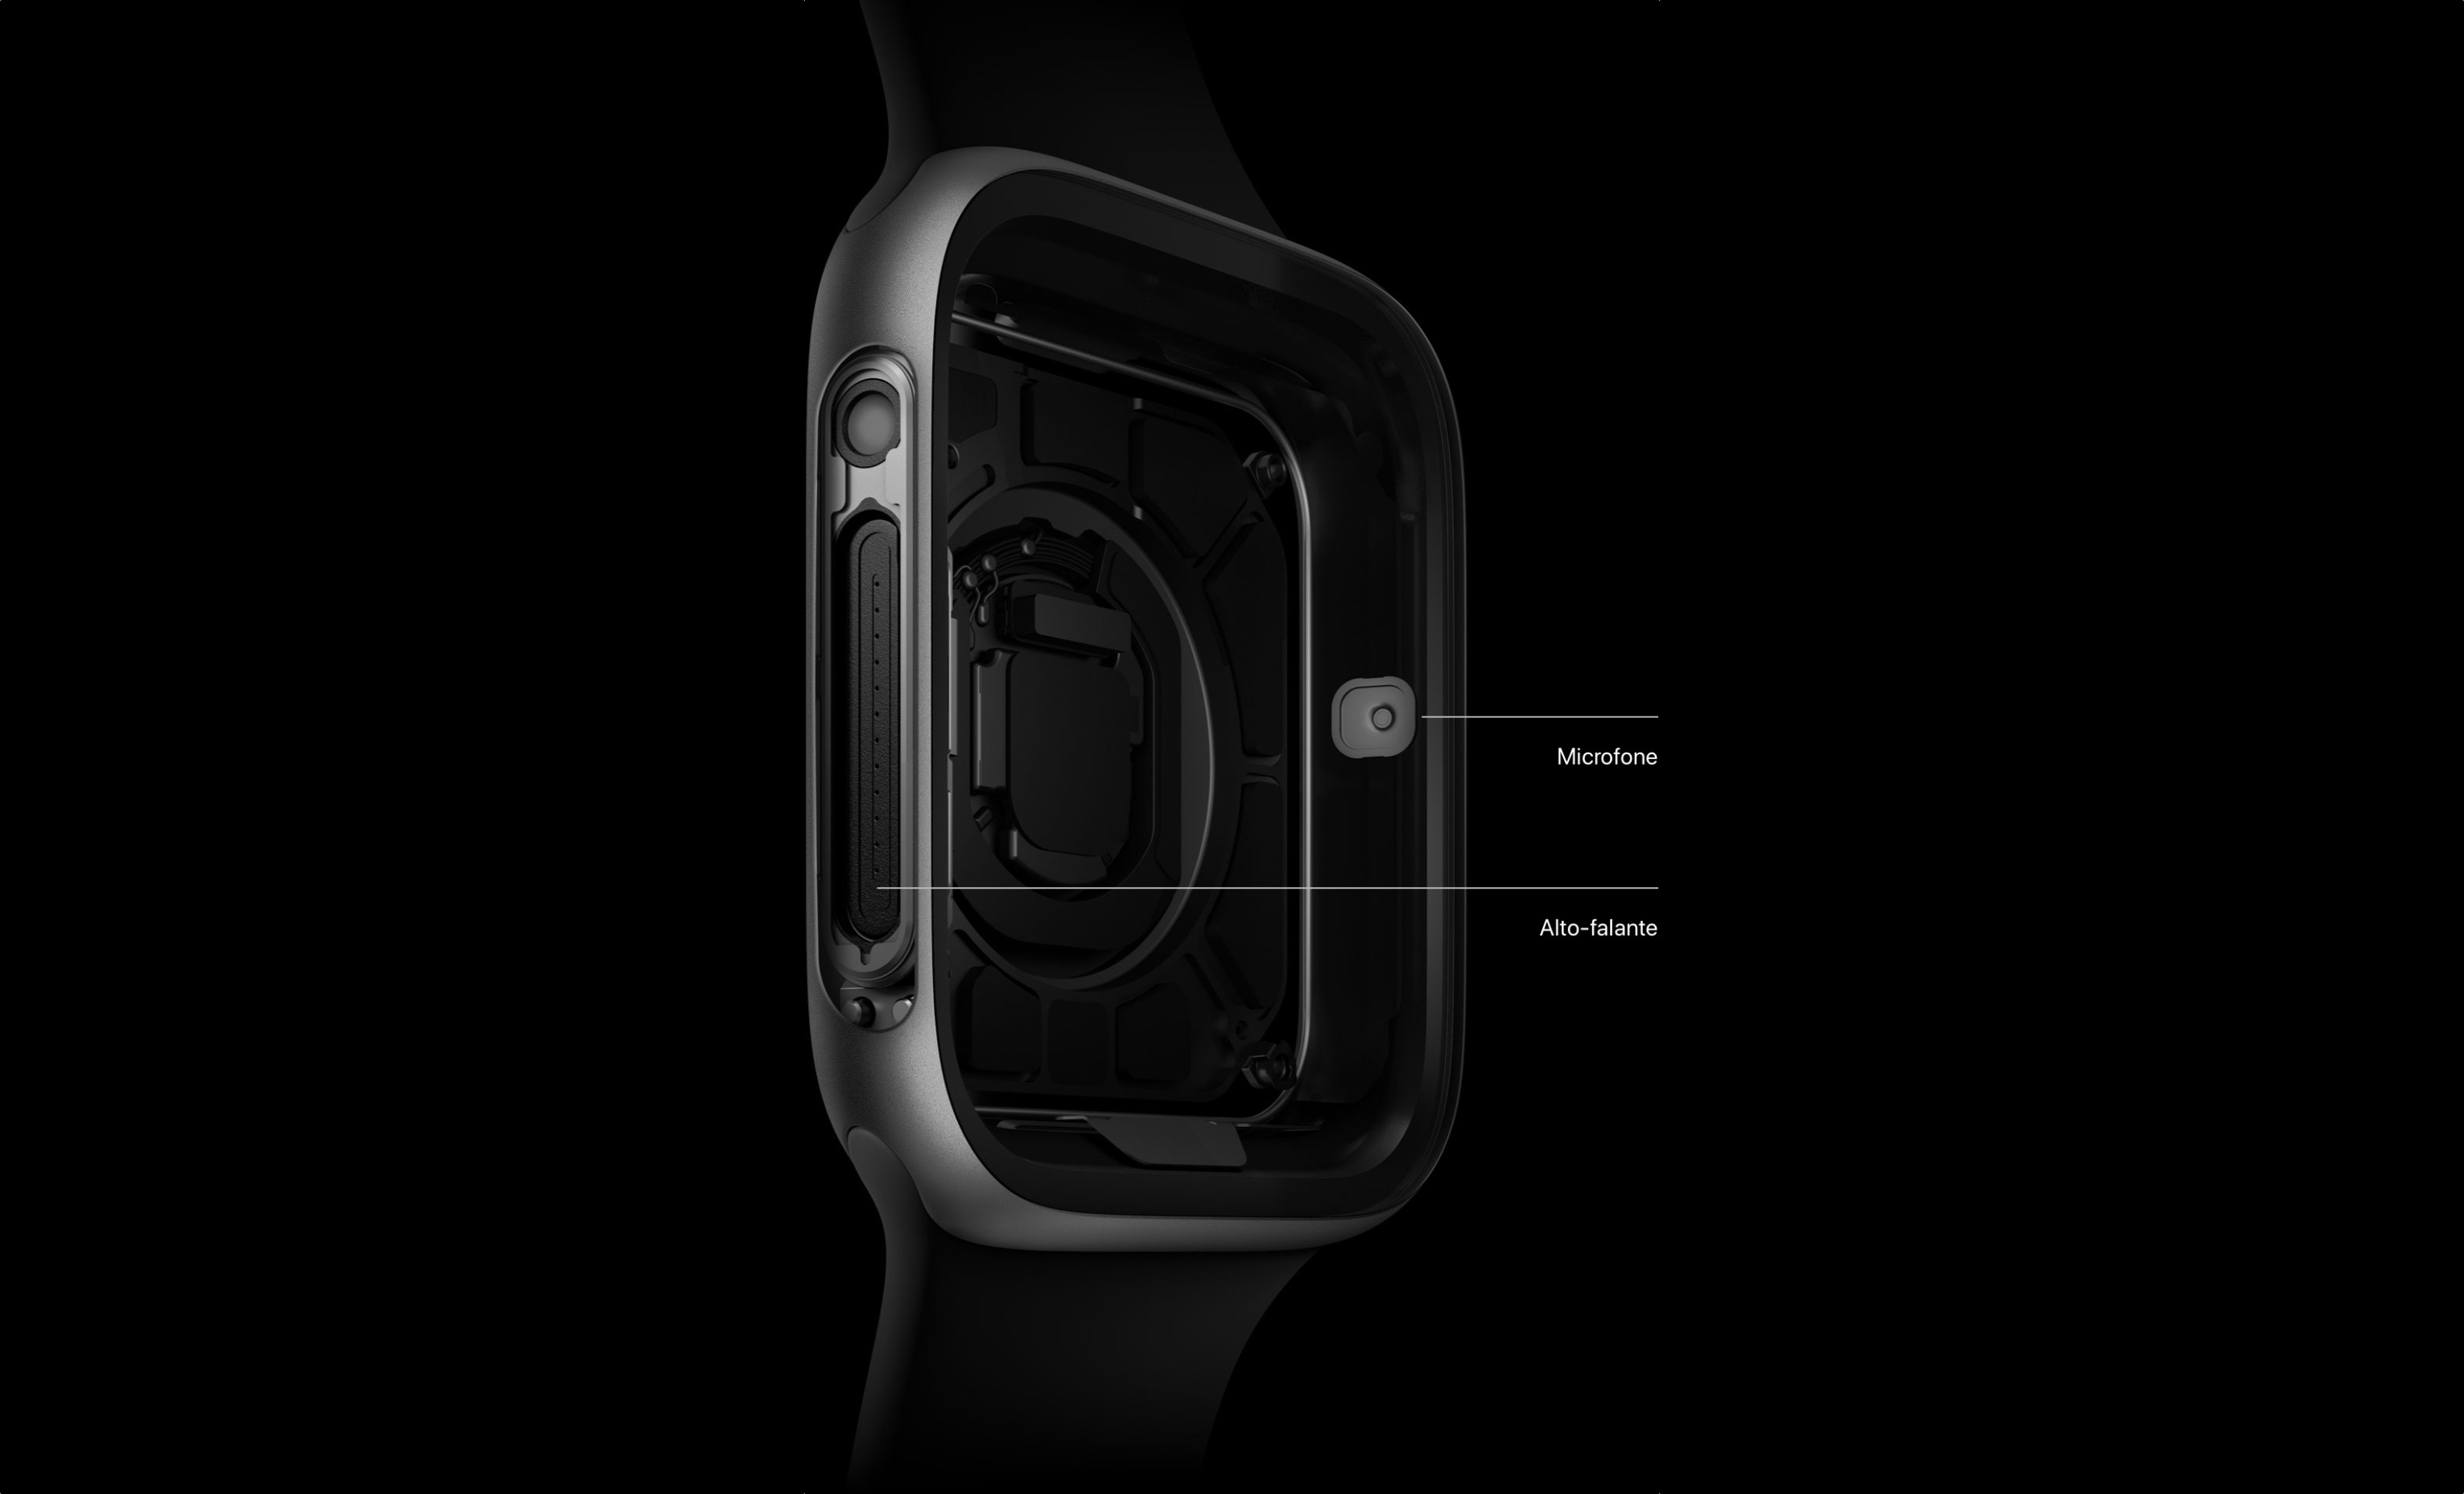 Alto-falante do Apple Watch Series 4